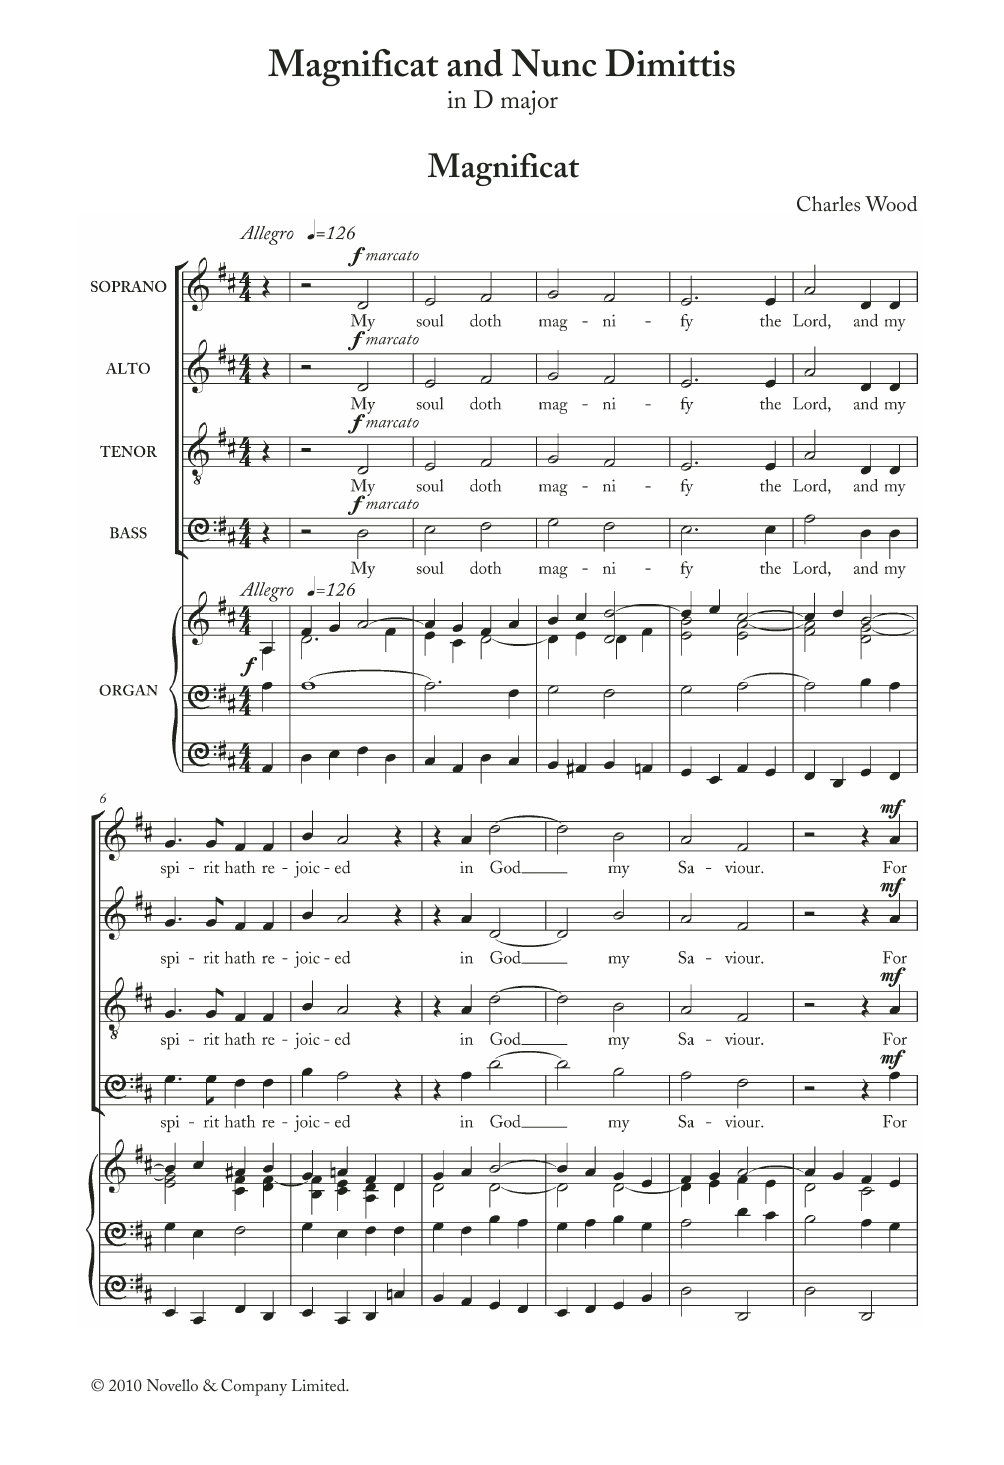 Charles Wood - Magnificat And Nunc Dimittis In D